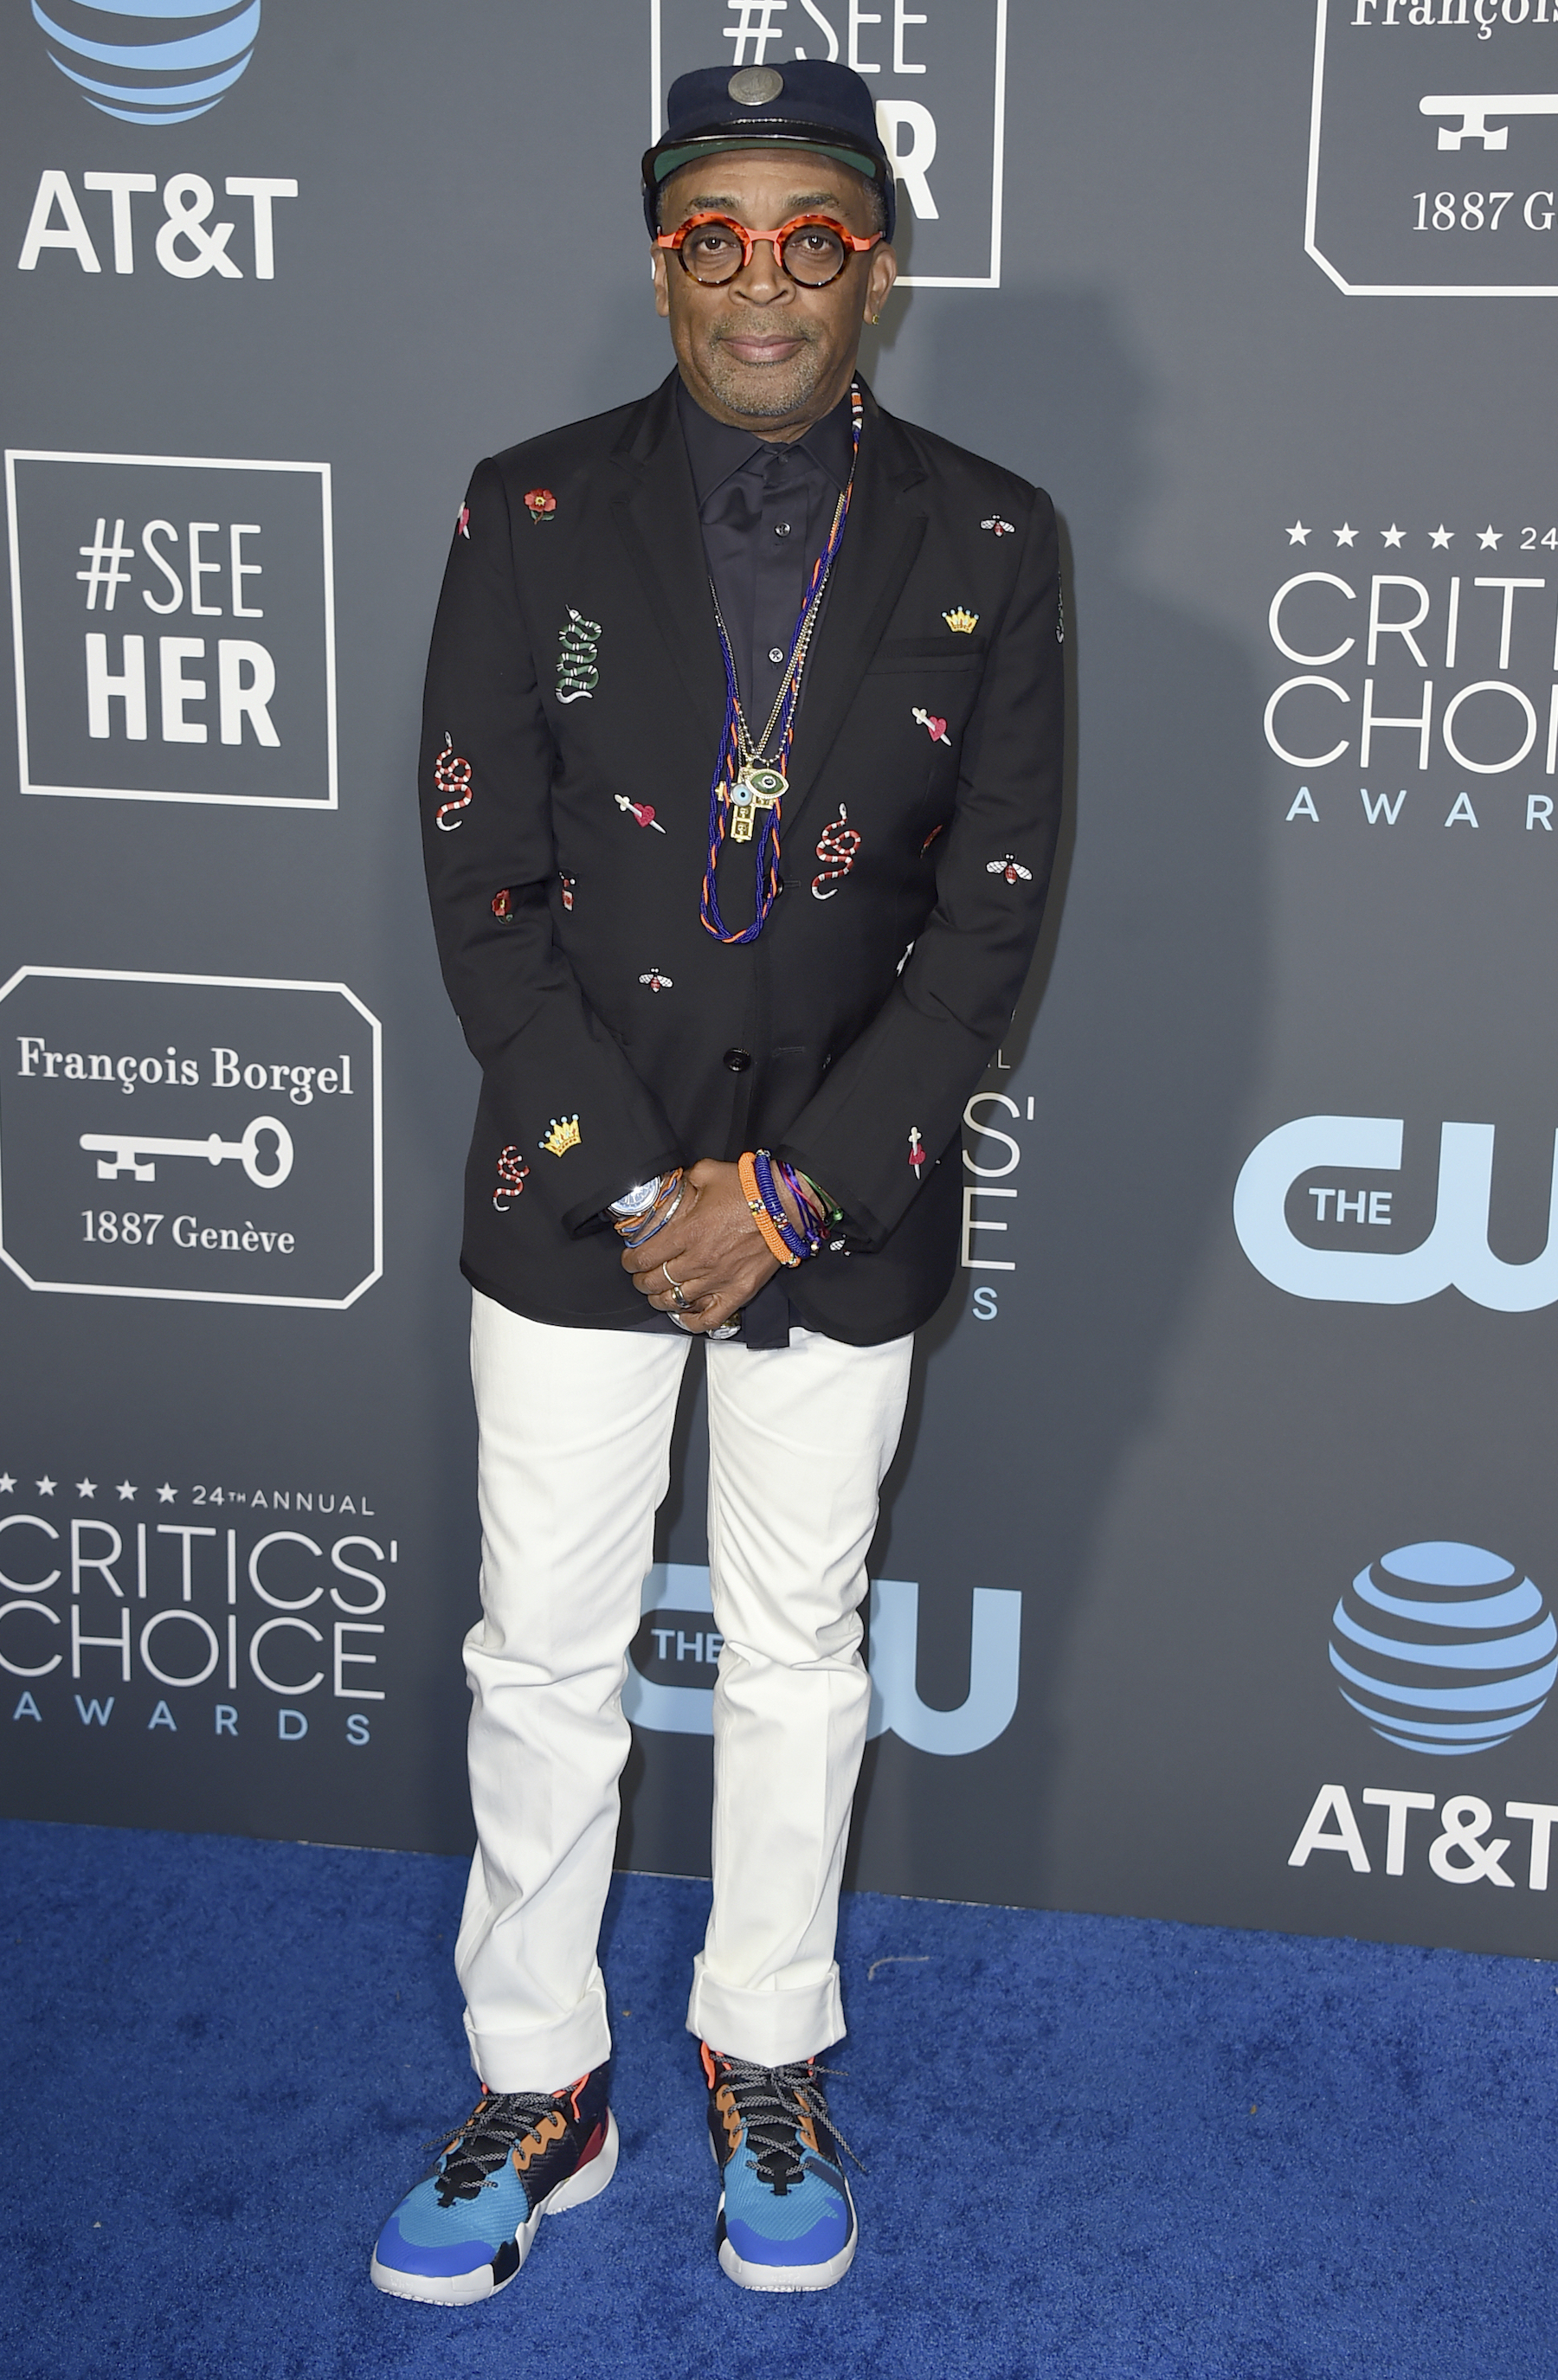 "<div class=""meta image-caption""><div class=""origin-logo origin-image ap""><span>AP</span></div><span class=""caption-text"">Spike Lee arrives at the 24th annual Critics' Choice Awards on Sunday, Jan. 13, 2019, at the Barker Hangar in Santa Monica, Calif. (Jordan Strauss/Invision/AP)</span></div>"